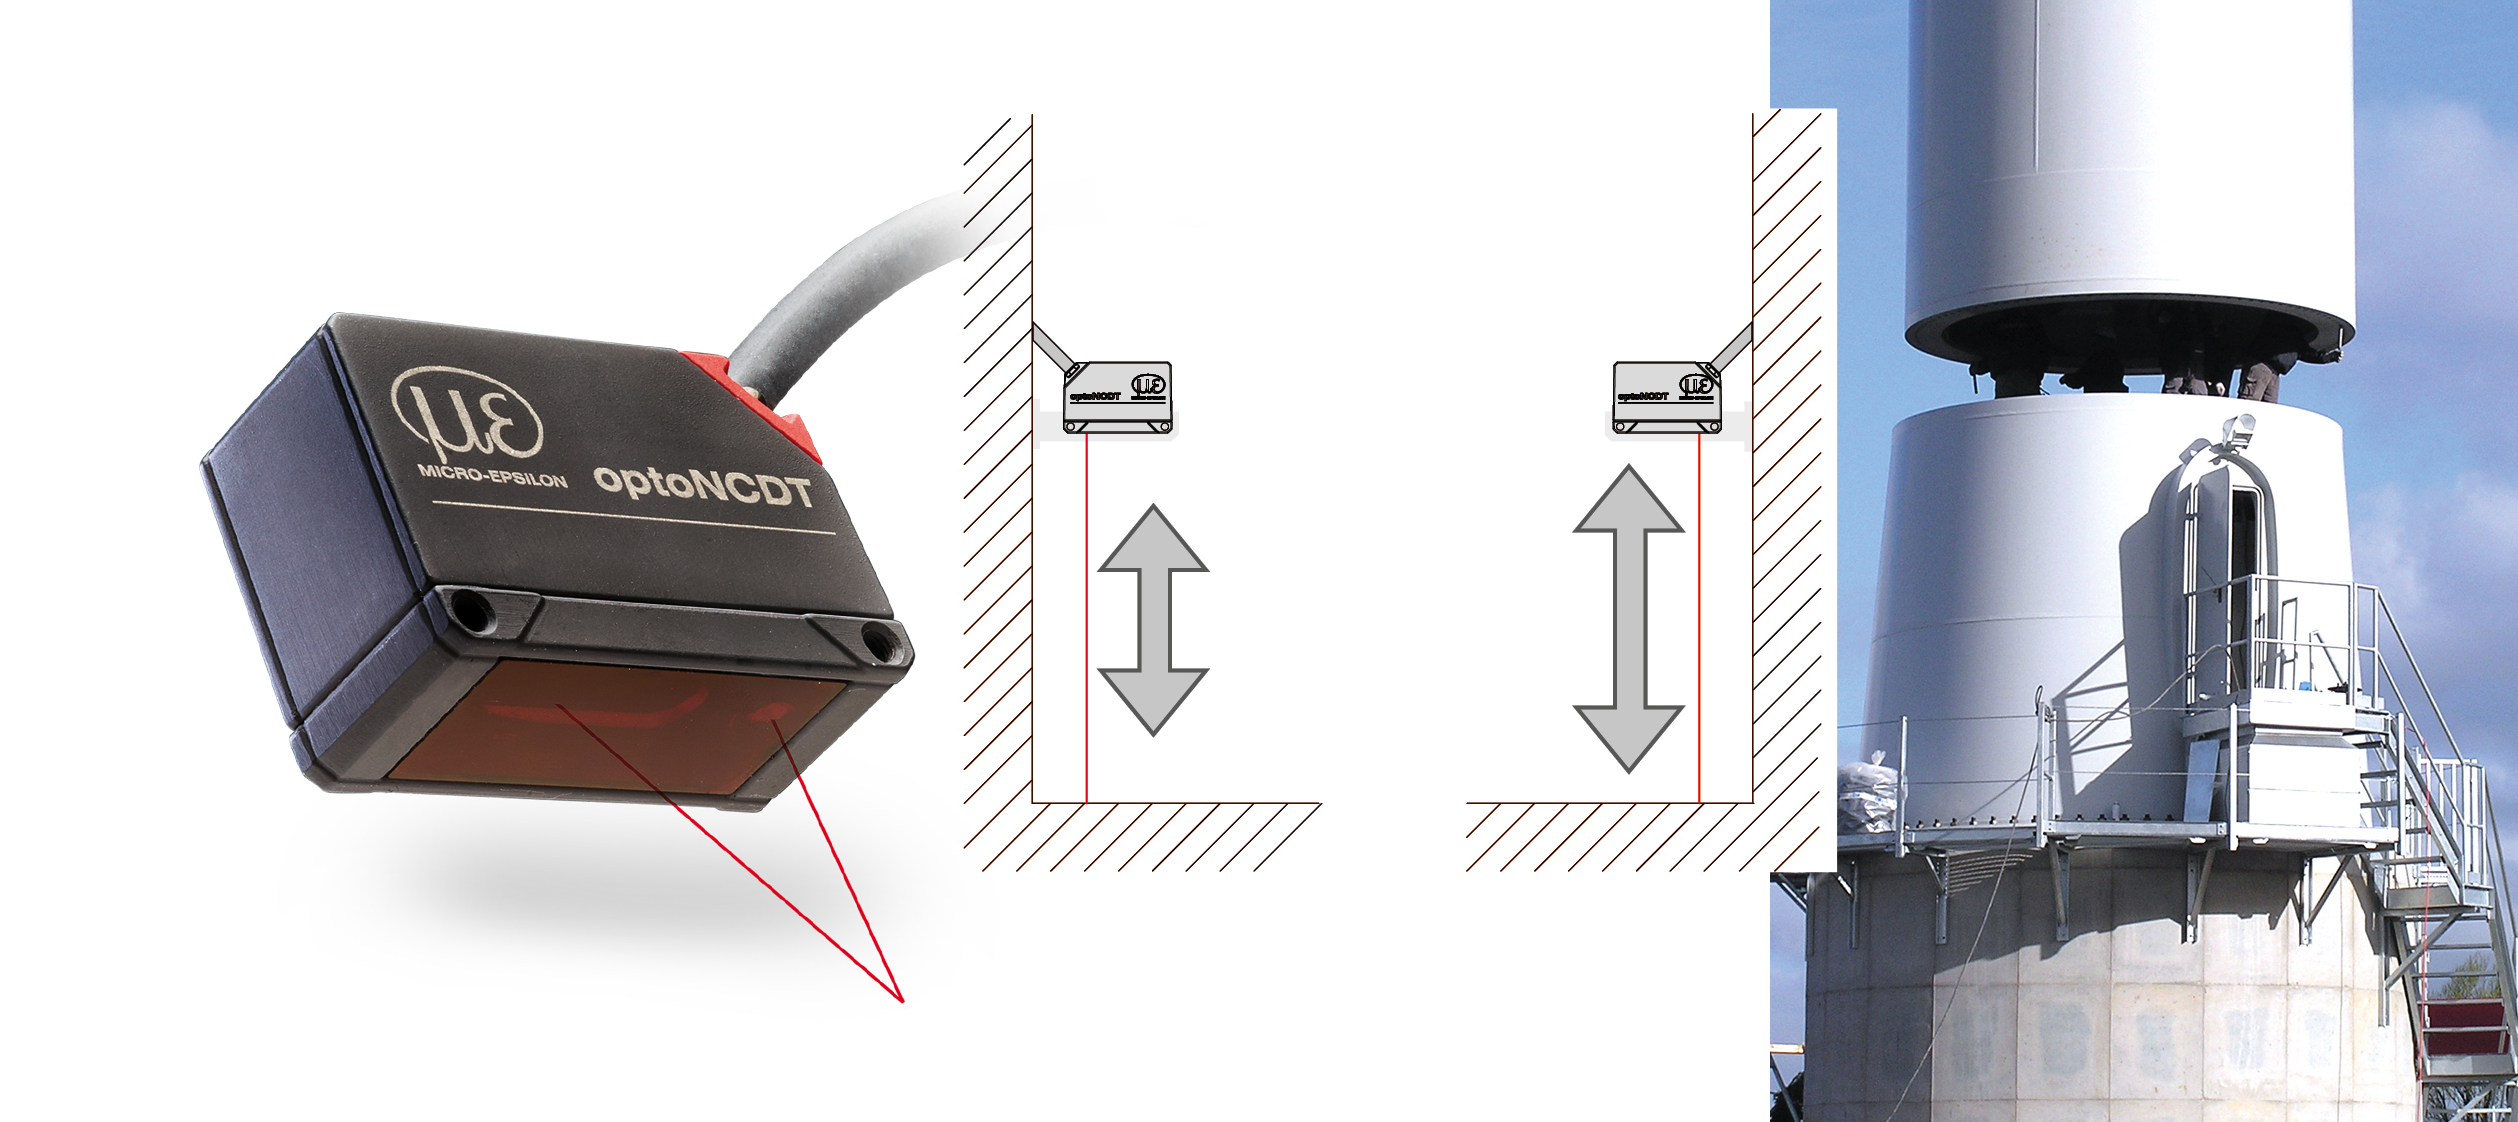 Figure 3: Laser triangulation sensors measure the distance between the mast and the foundation. (Source: Micro-Epsilon)